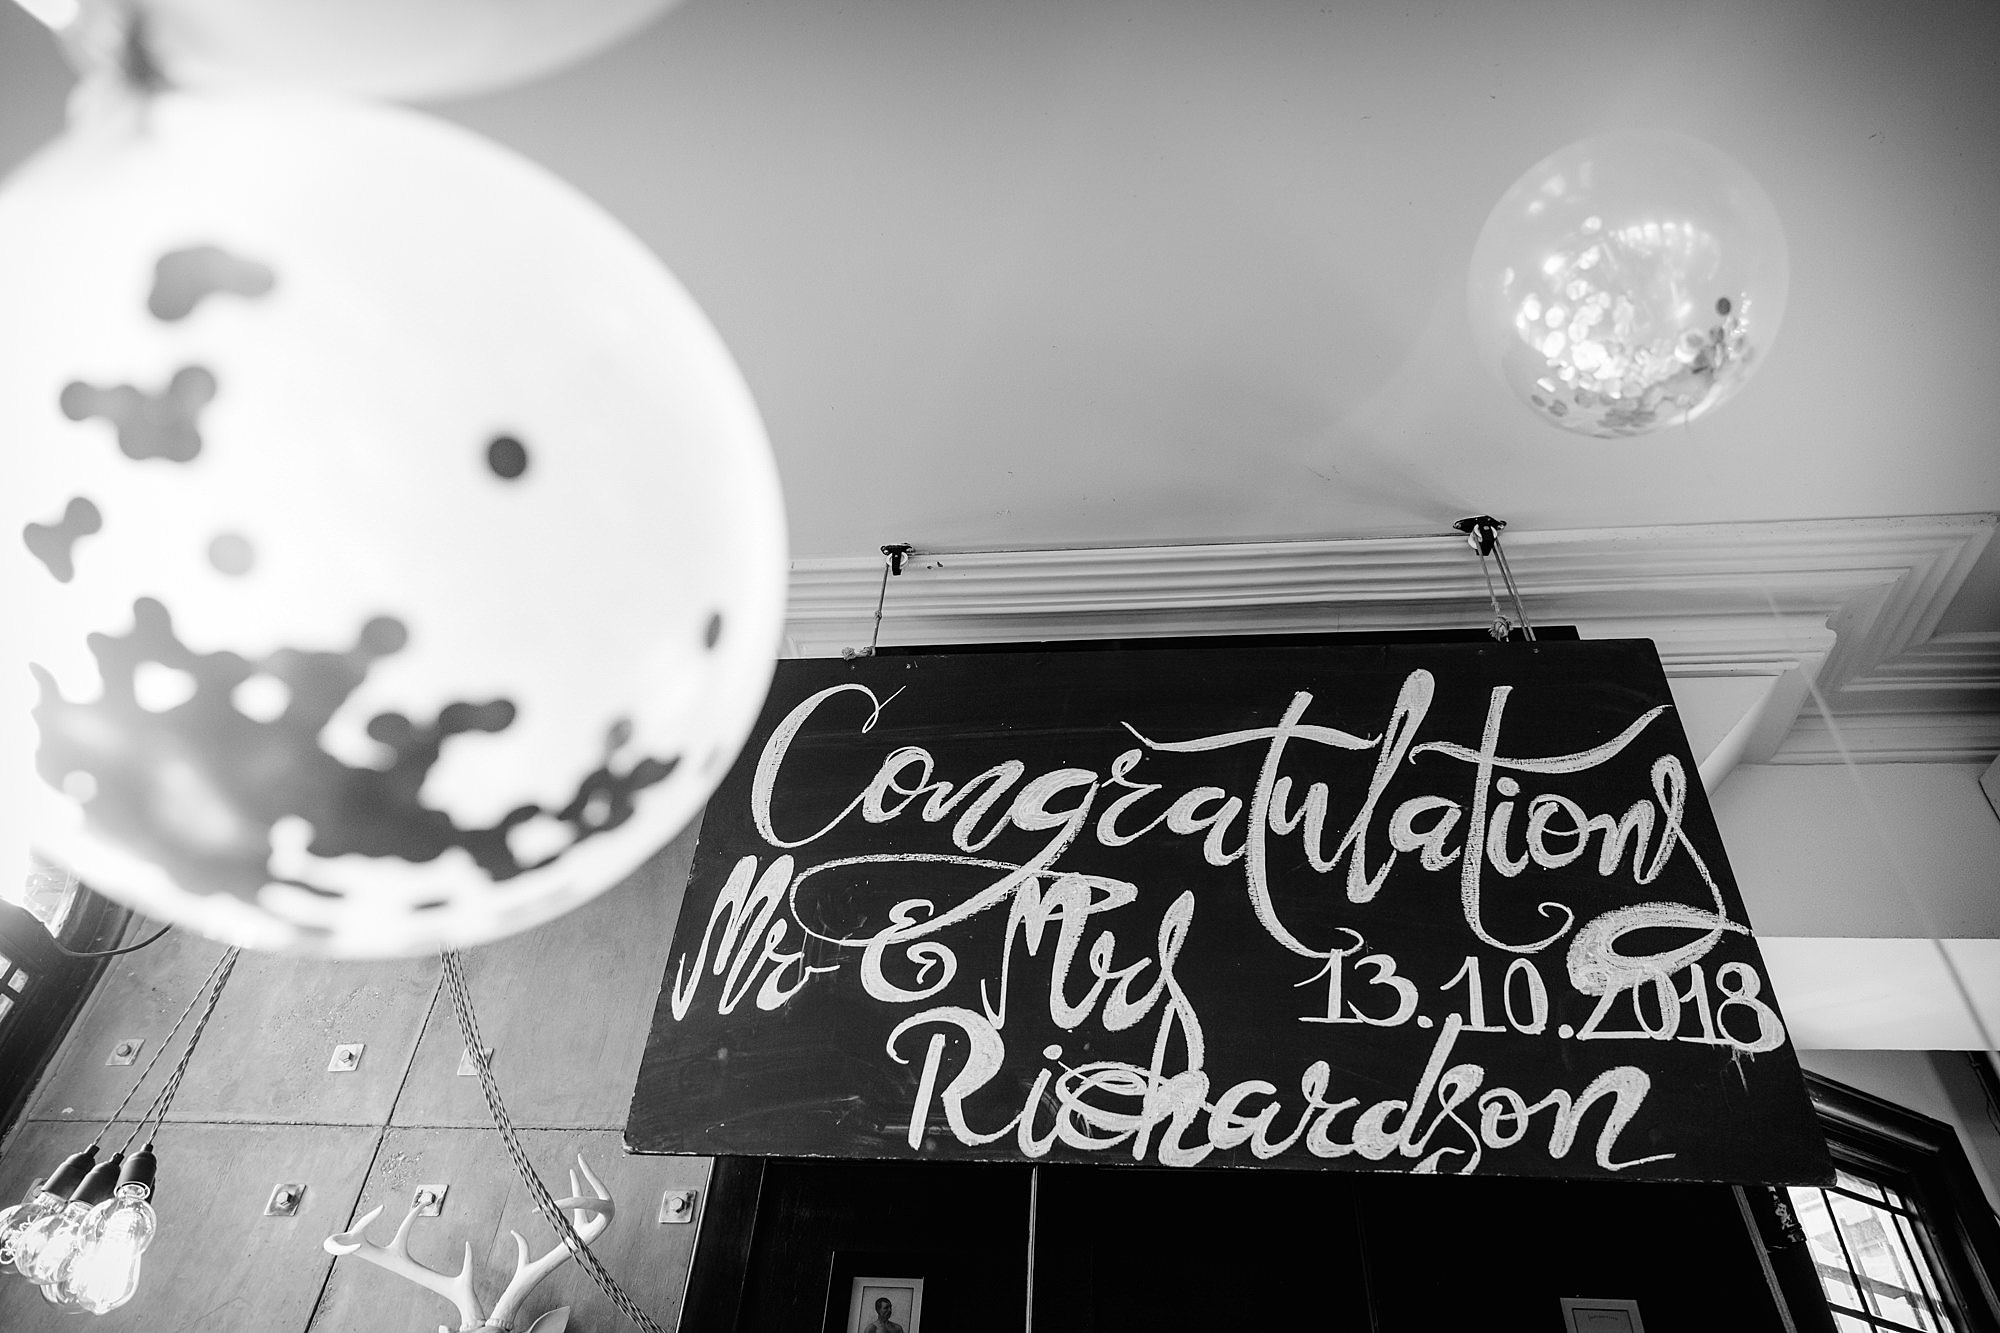 Prince albert camden wedding blackboard